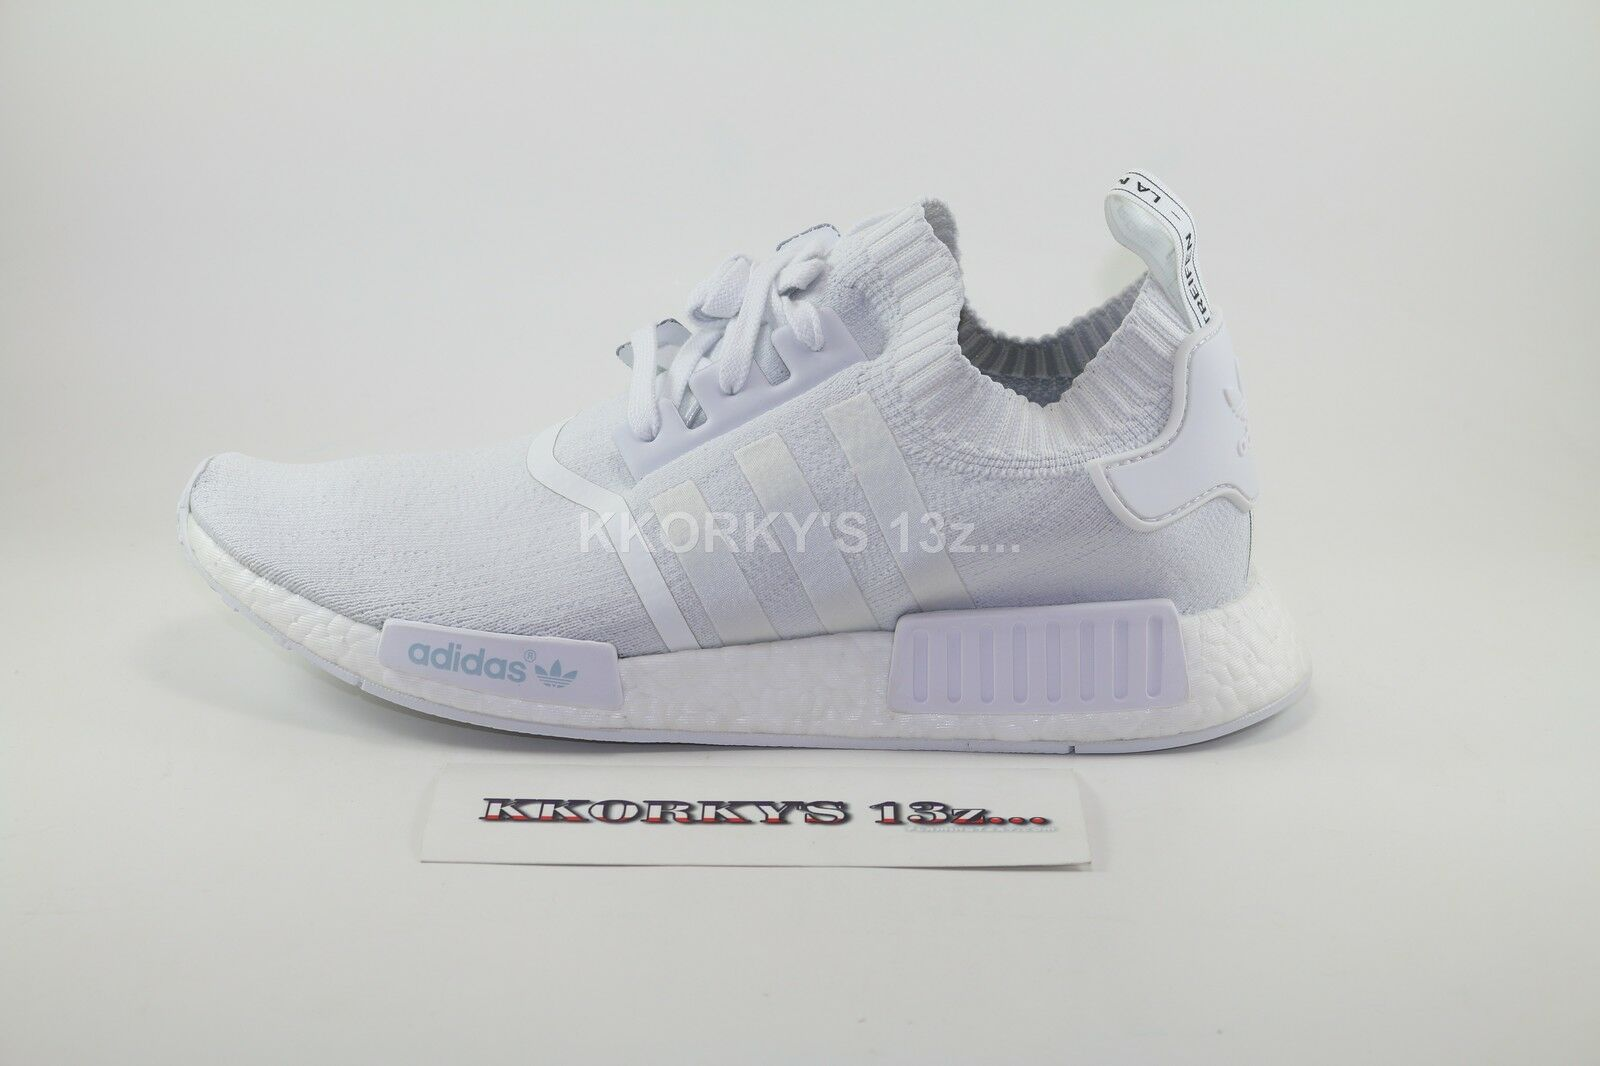 ADIDAS NMD R1 PRIMEKNIT WHITE OUT  12.5 US 12  3